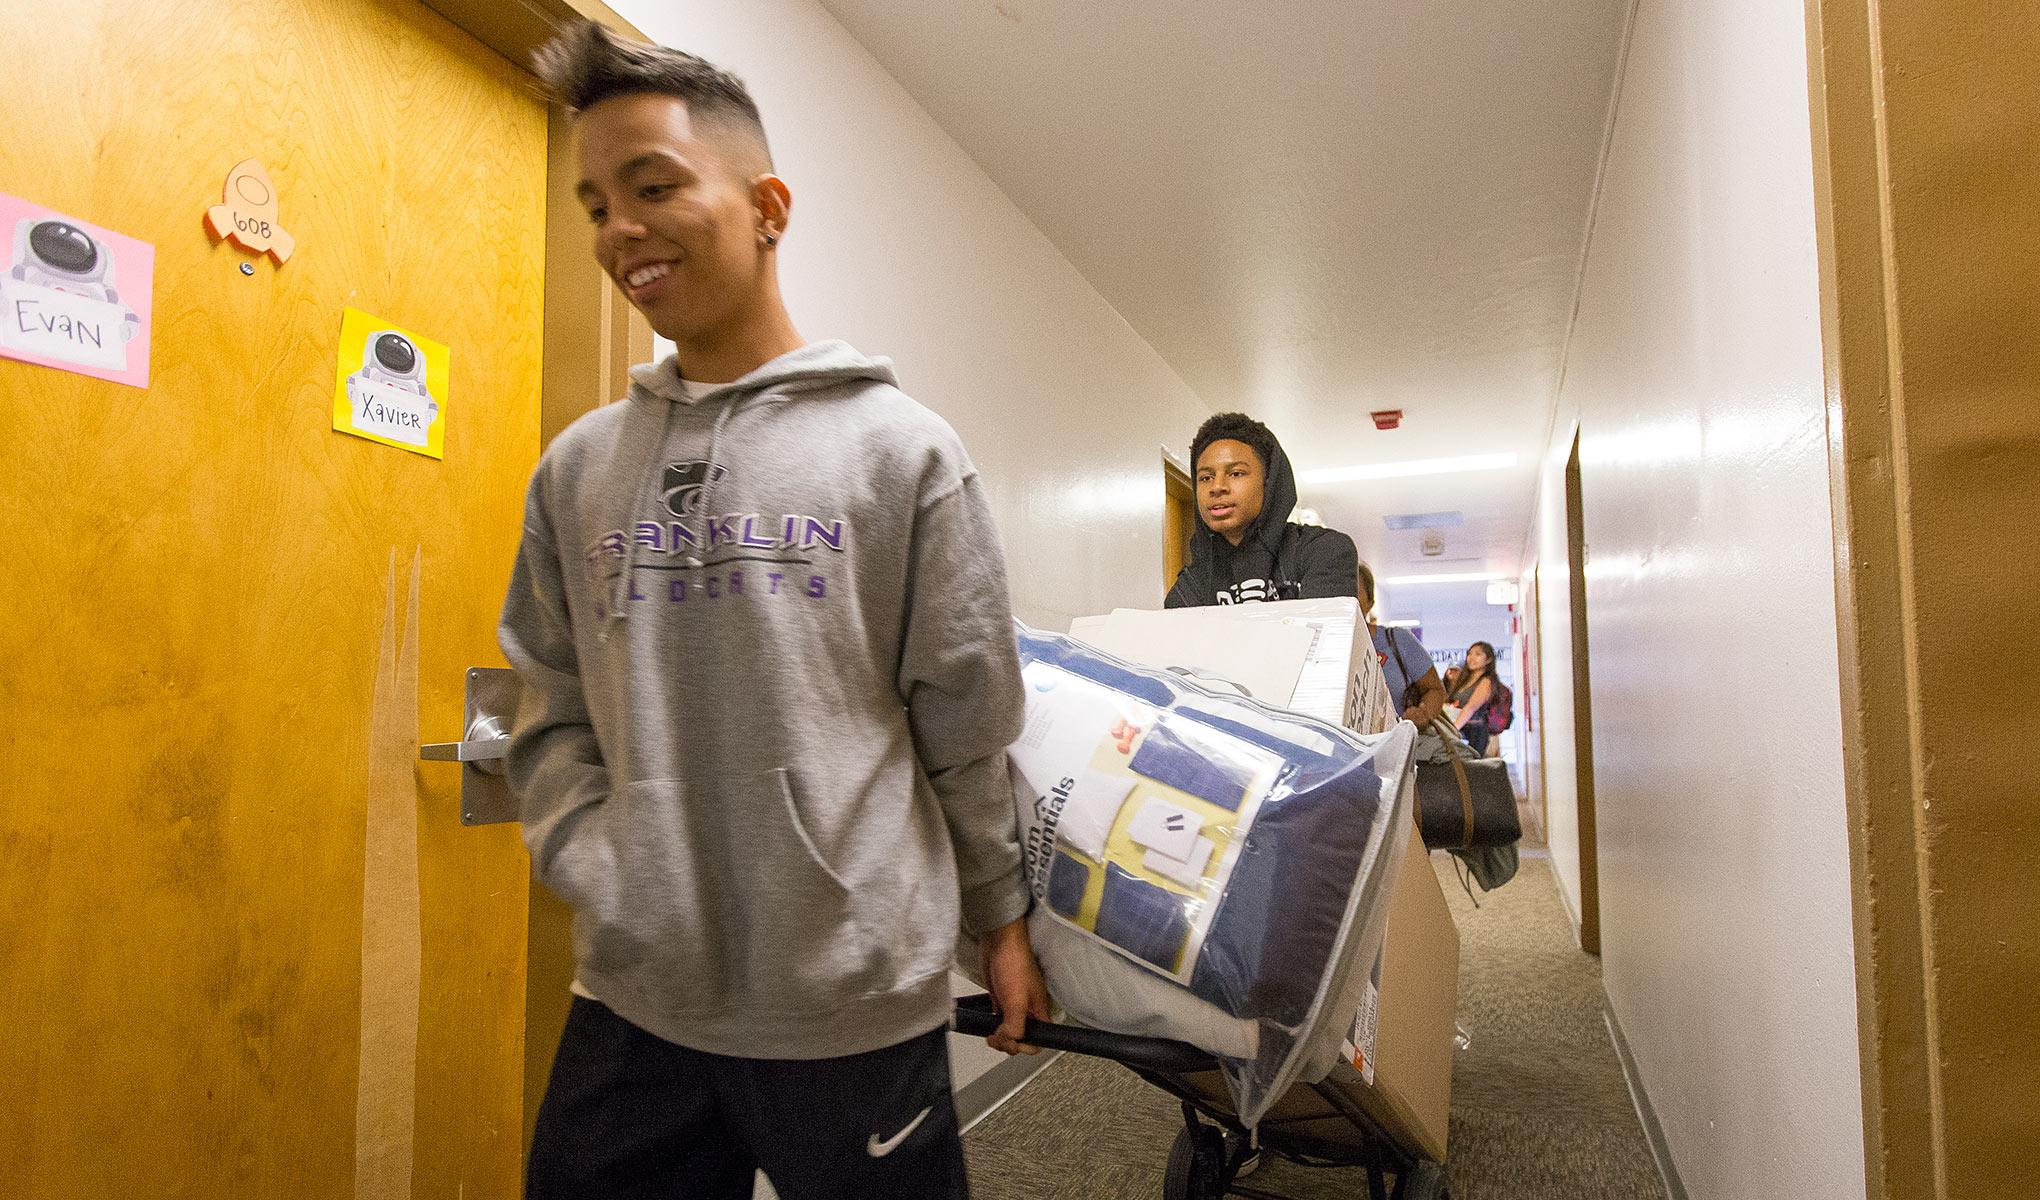 Two new SF State students moving into the residence halls.